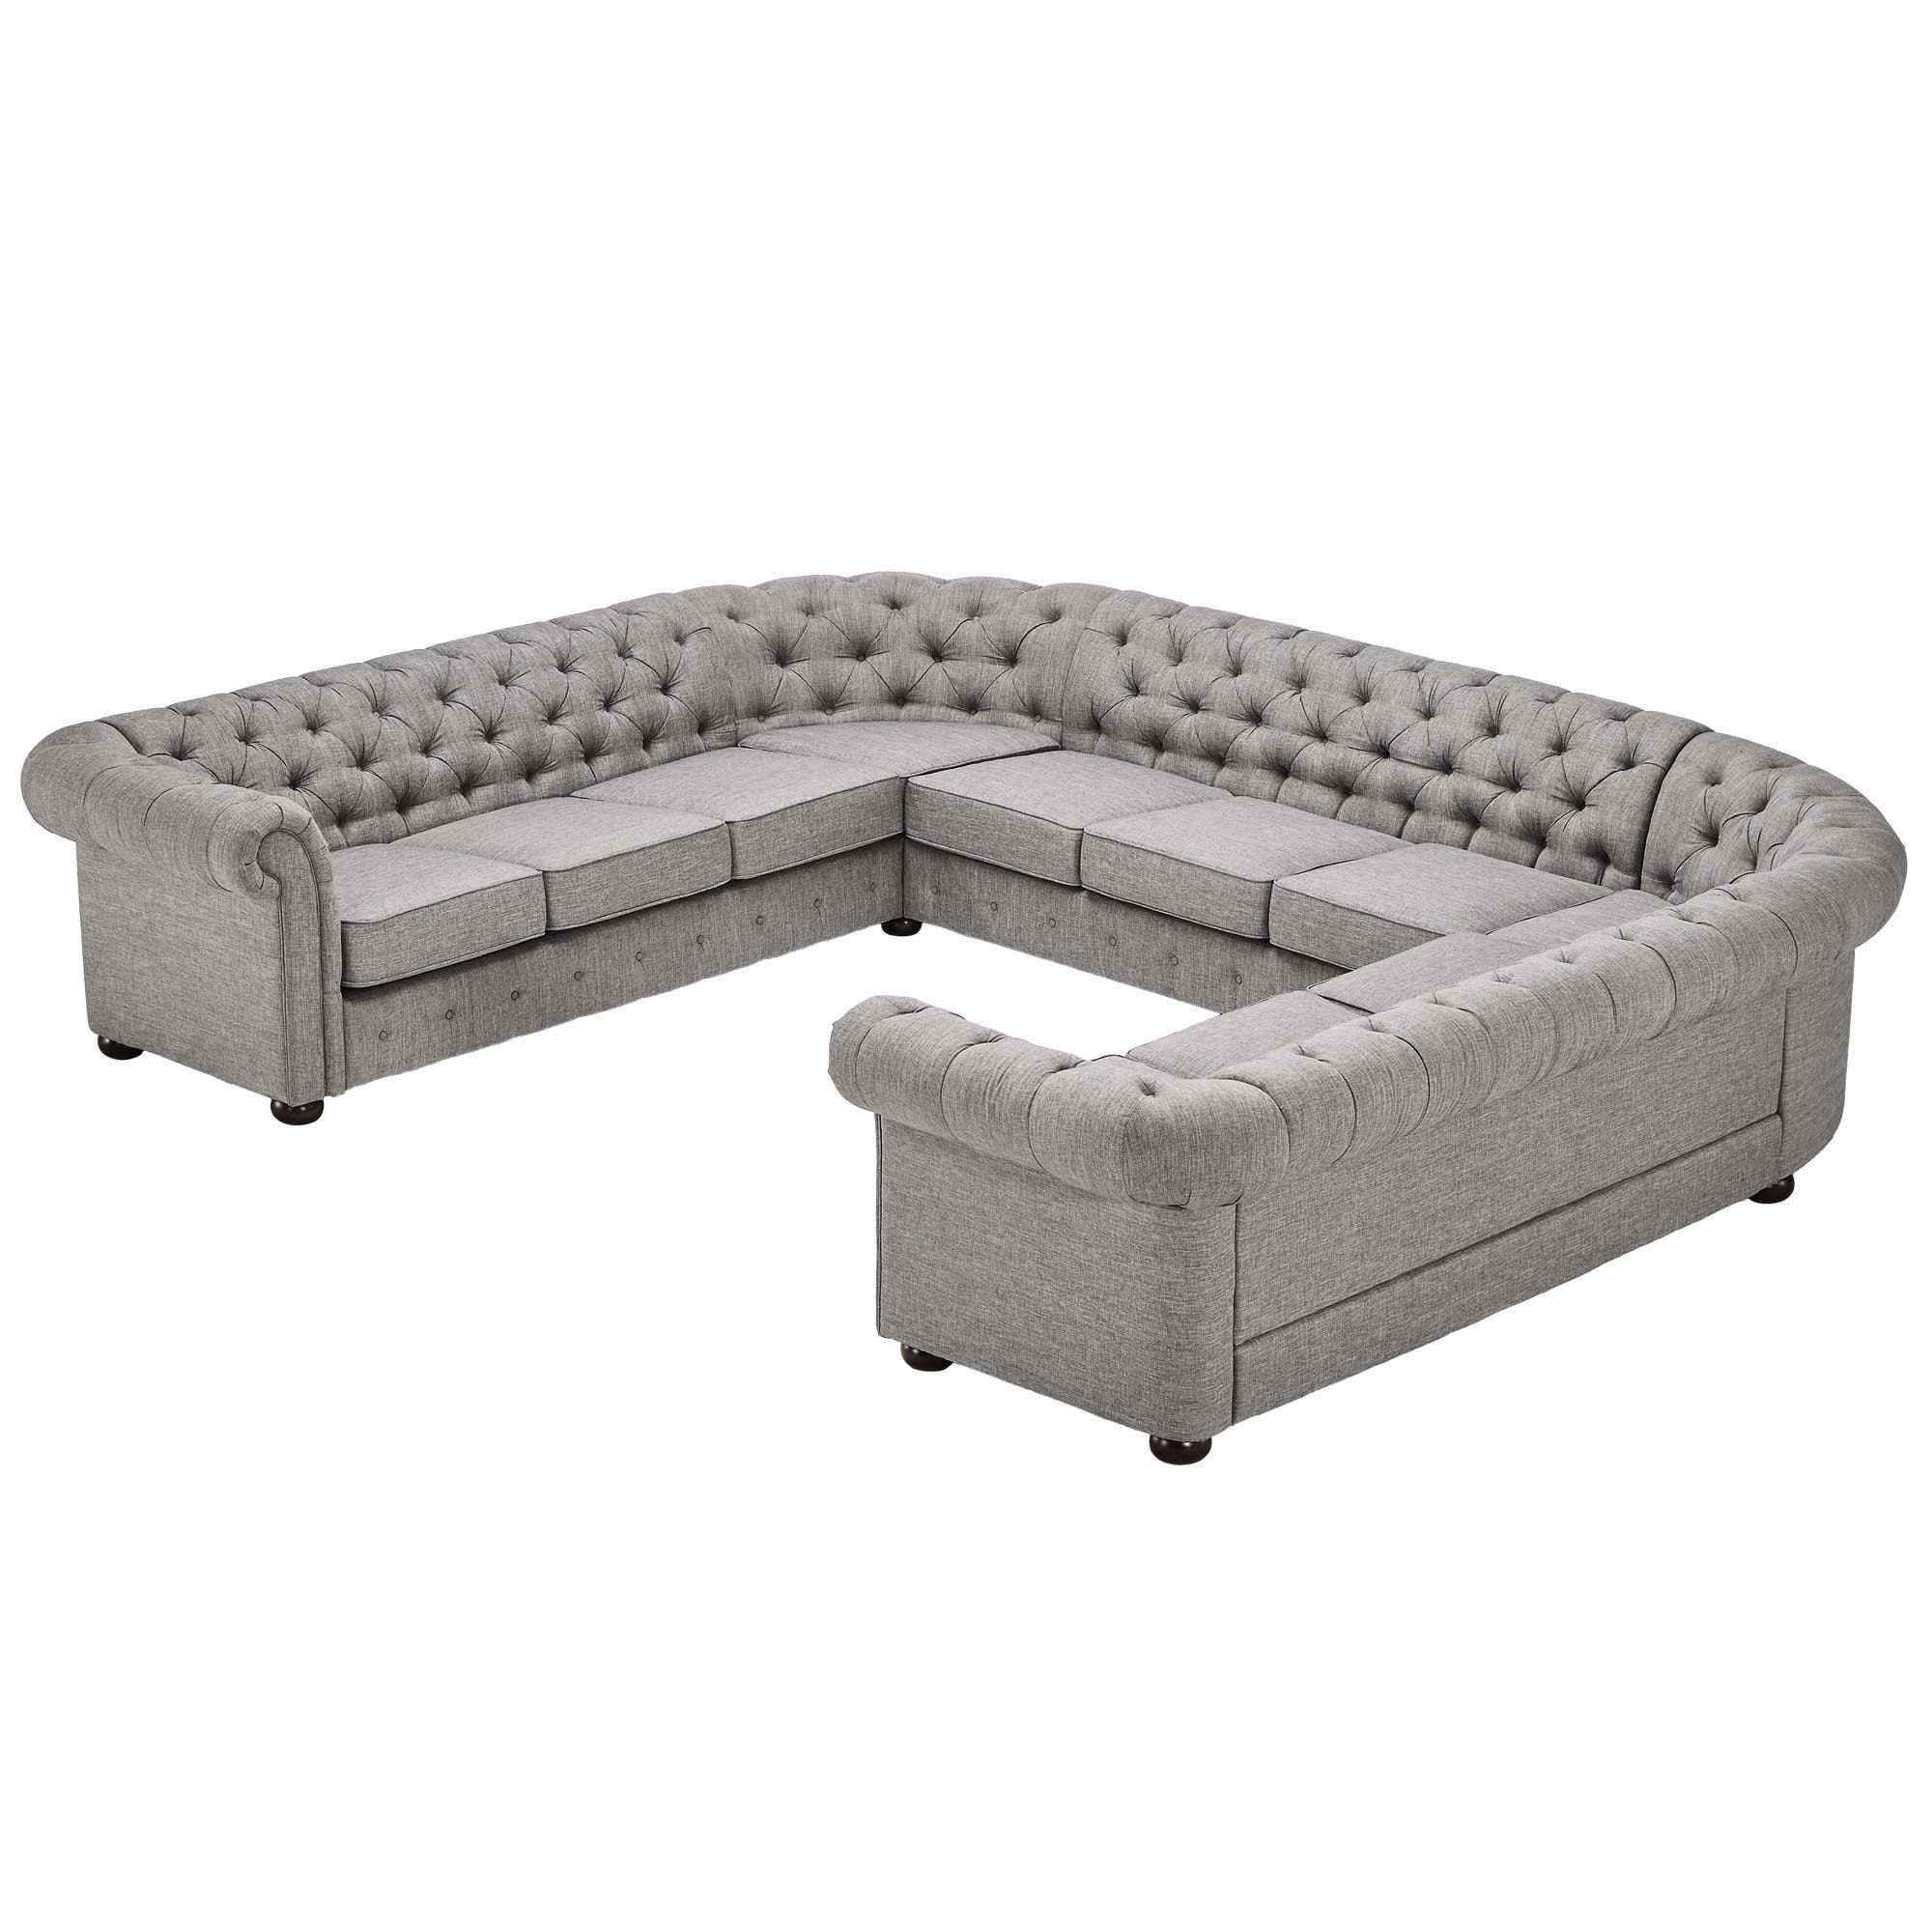 Tribecca Home Knightsbridge Beige Linen Tufted Scroll Arm Chesterfield Sofa Small Cote 11 Seat U